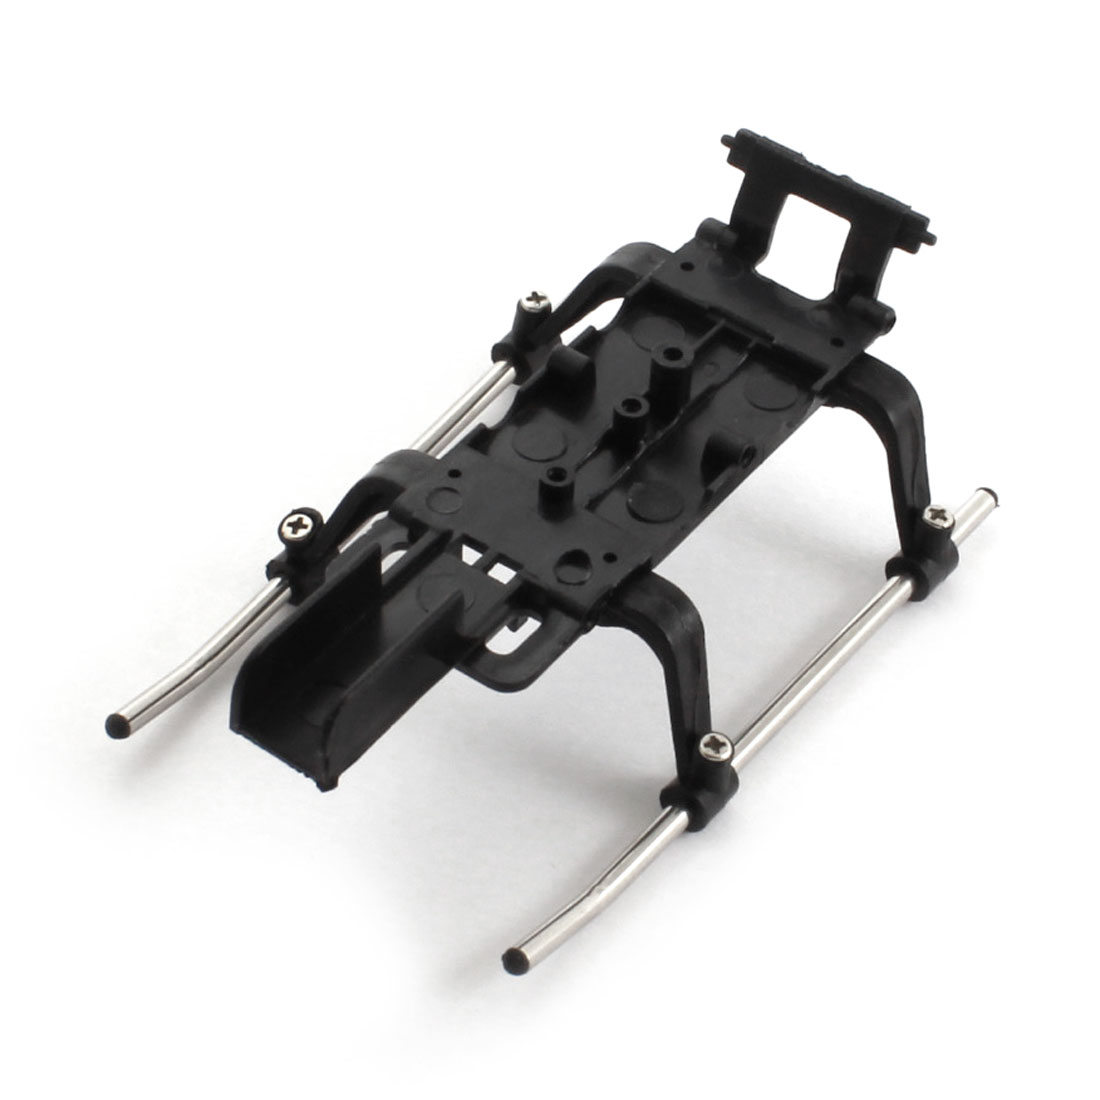 RC Helicopter Universal Undercarriage Landing Skid Gear Stand Replacement for Syma S107G-06